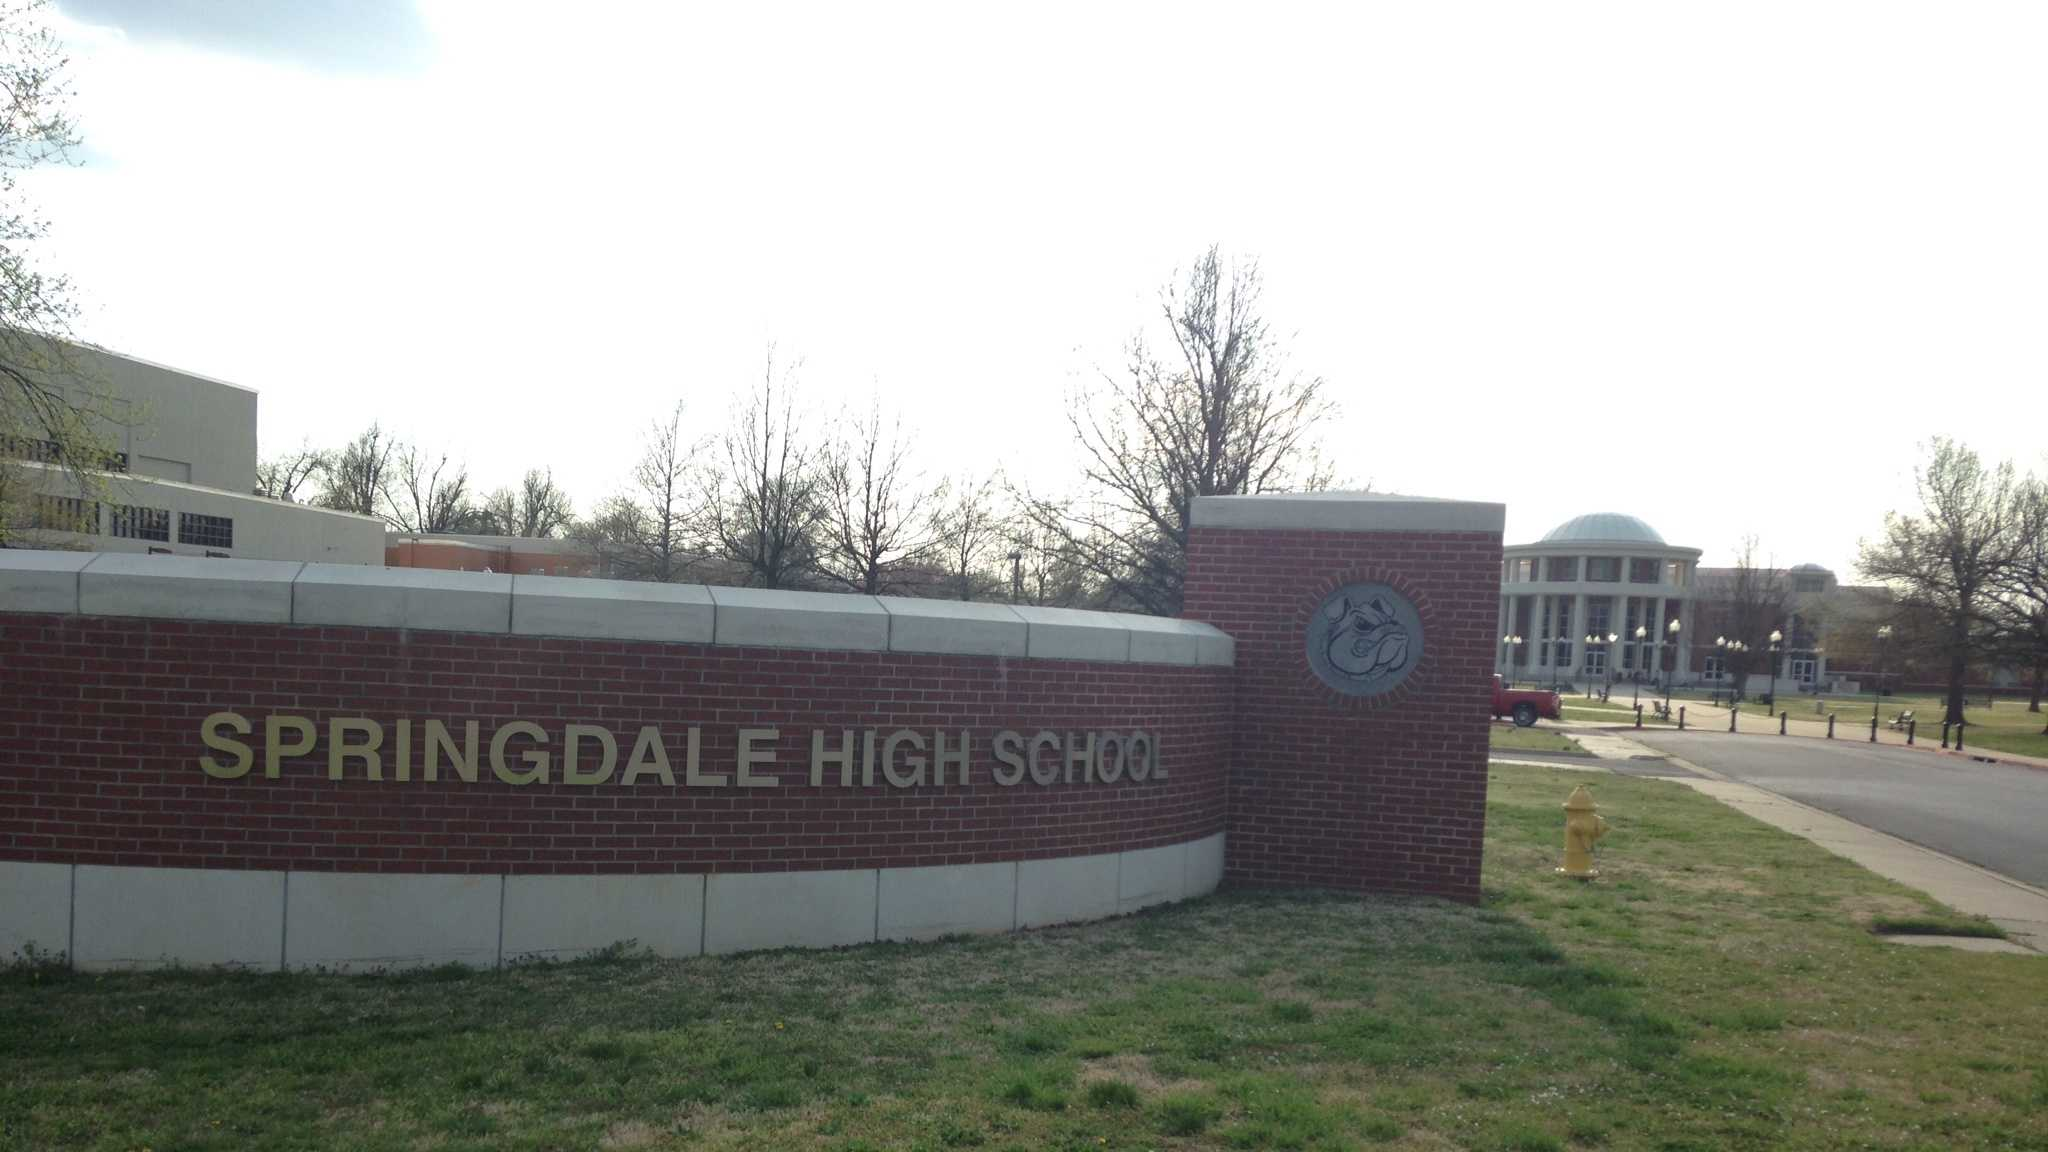 Police investigate bomb threat at Springdale High